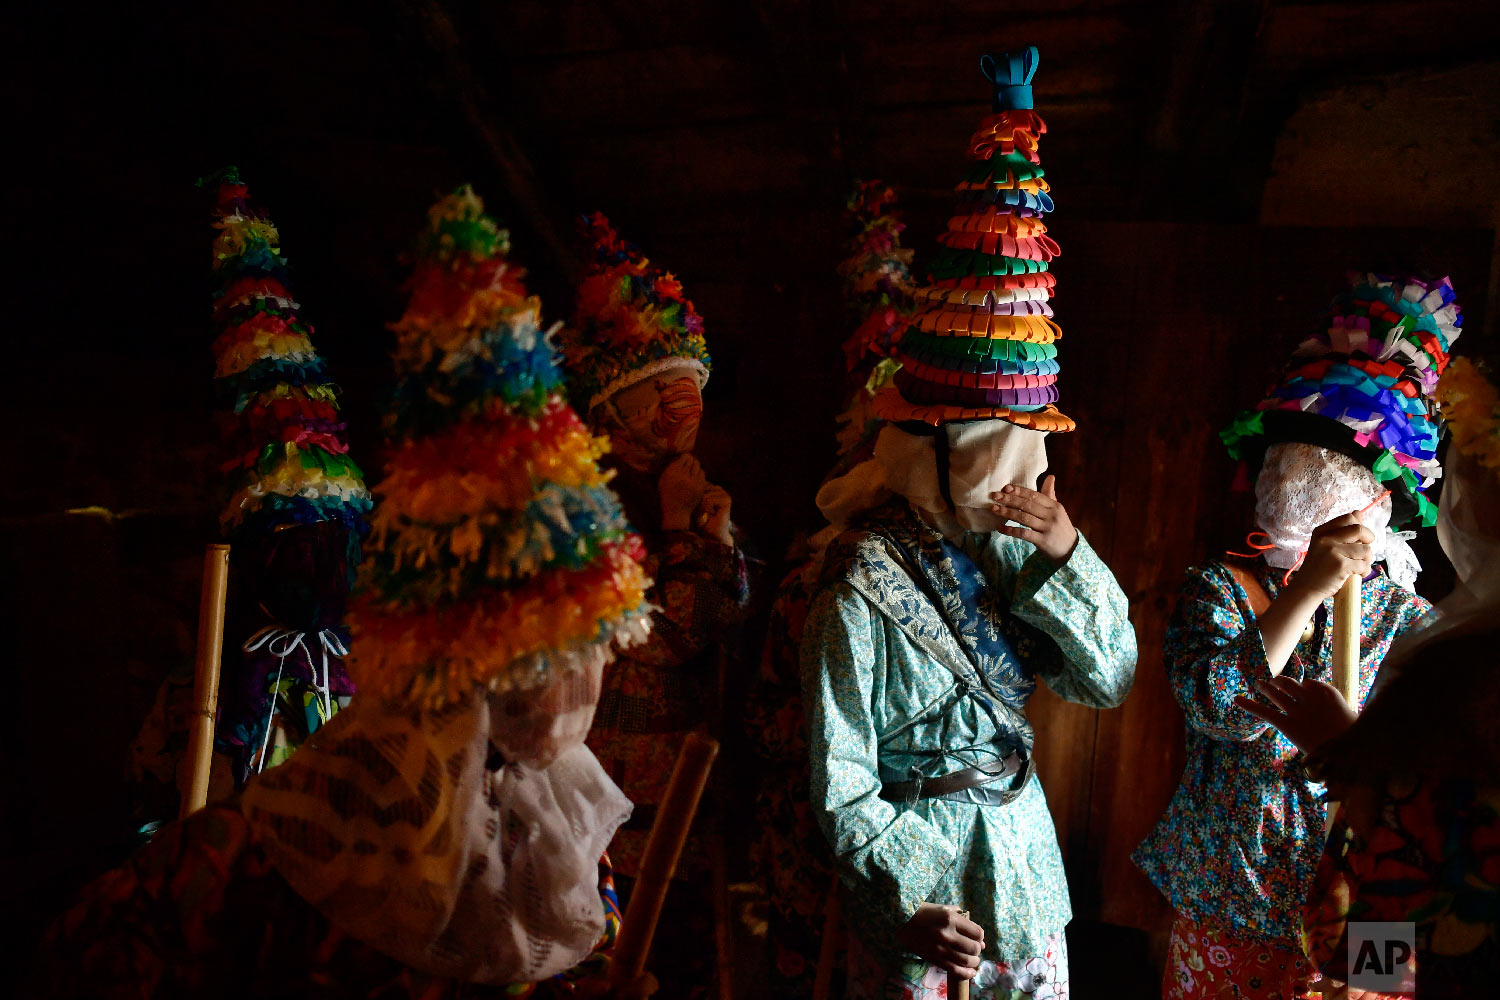 People prepare to takes part in ancient rural carnival in the small Pyrenees village of Lantz, northern Spain, Sunday, March 3, 2019. The carnival is a long-standing rural tradition in which the forces of good and evil confront each other in a symbolic battle. (AP Photo/Alvaro Barrientos)